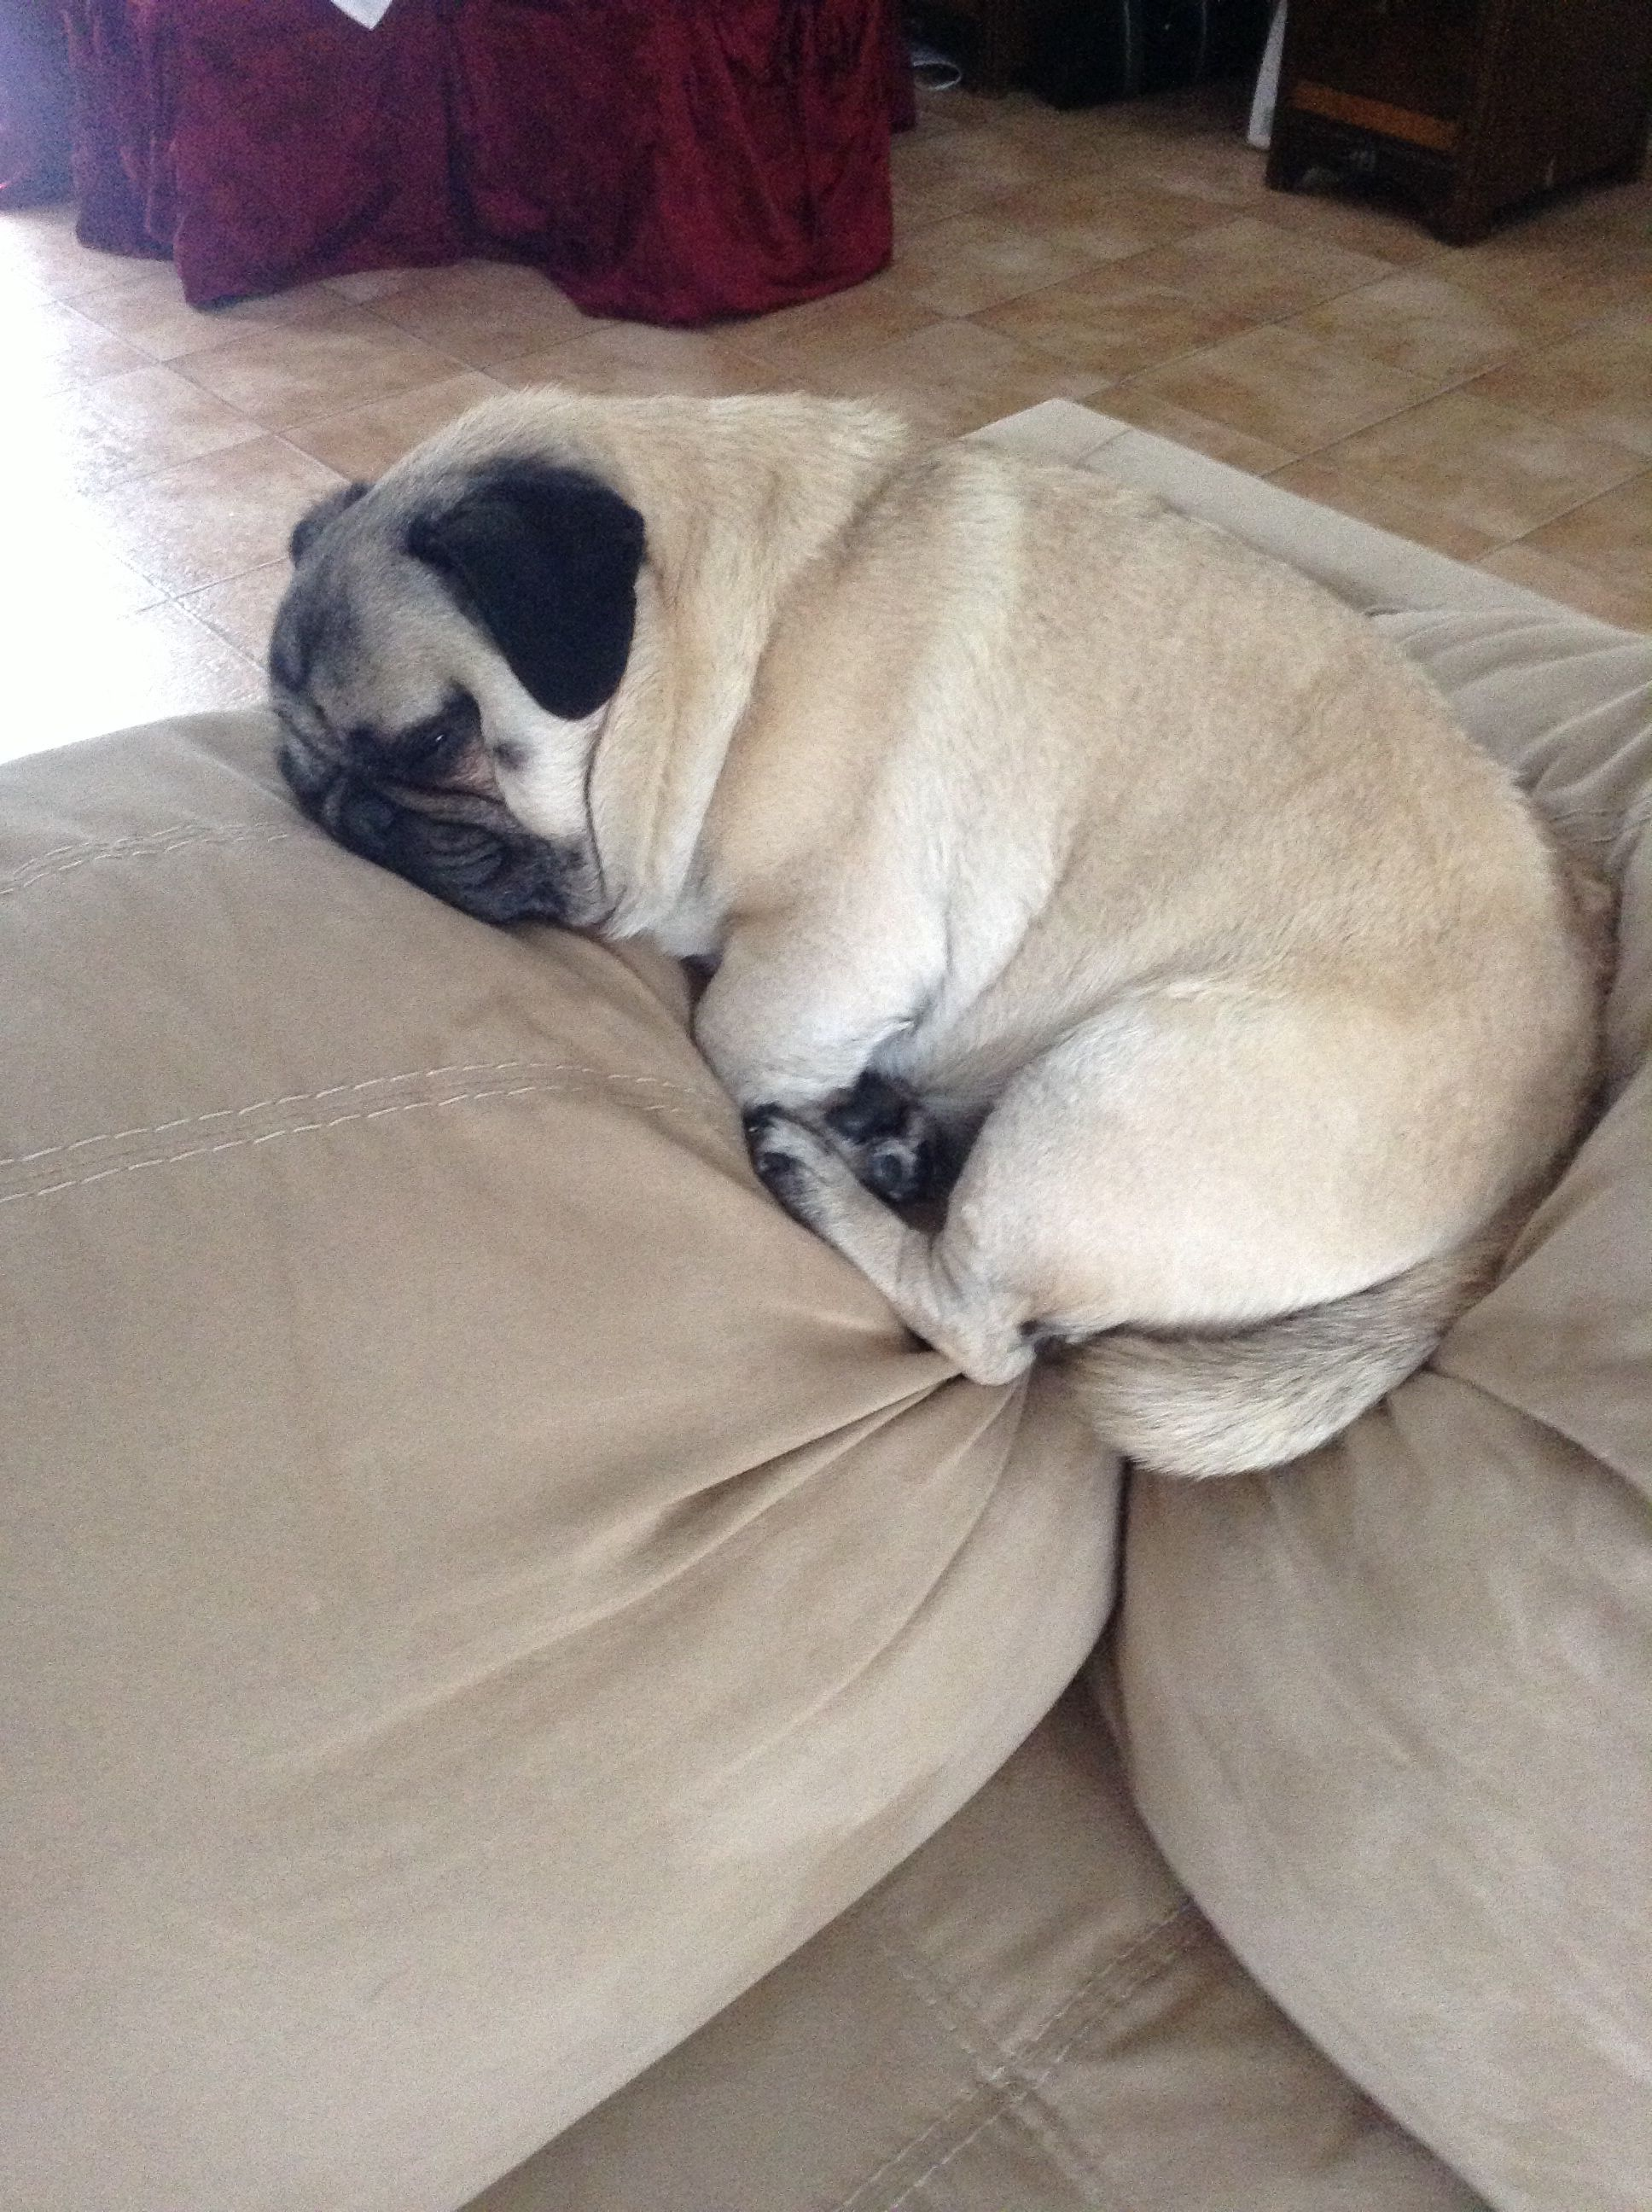 My Pug Does This Every Time We Aren T Home And Gets In Trouble